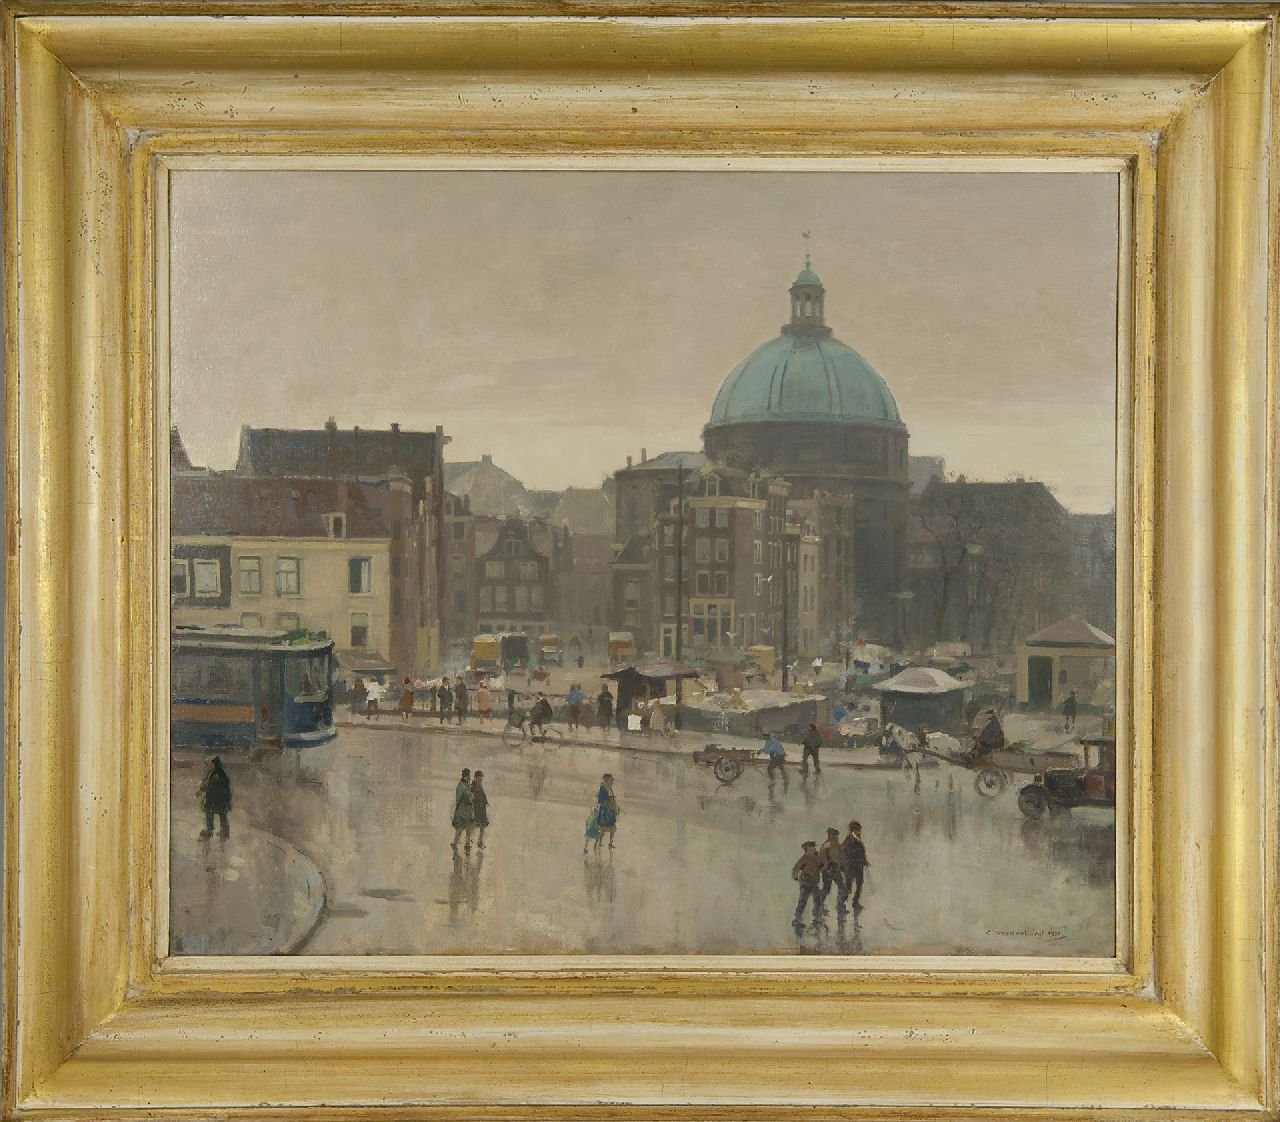 Vreedenburgh C.  | Cornelis Vreedenburgh | Paintings offered for sale | The Prins Hendrikkade, Amsterdam, with the Stromarkt and the Ronde Lutherse Kerk, oil on canvas 59.3 x 72.8 cm, signed l.r. and dated 1931